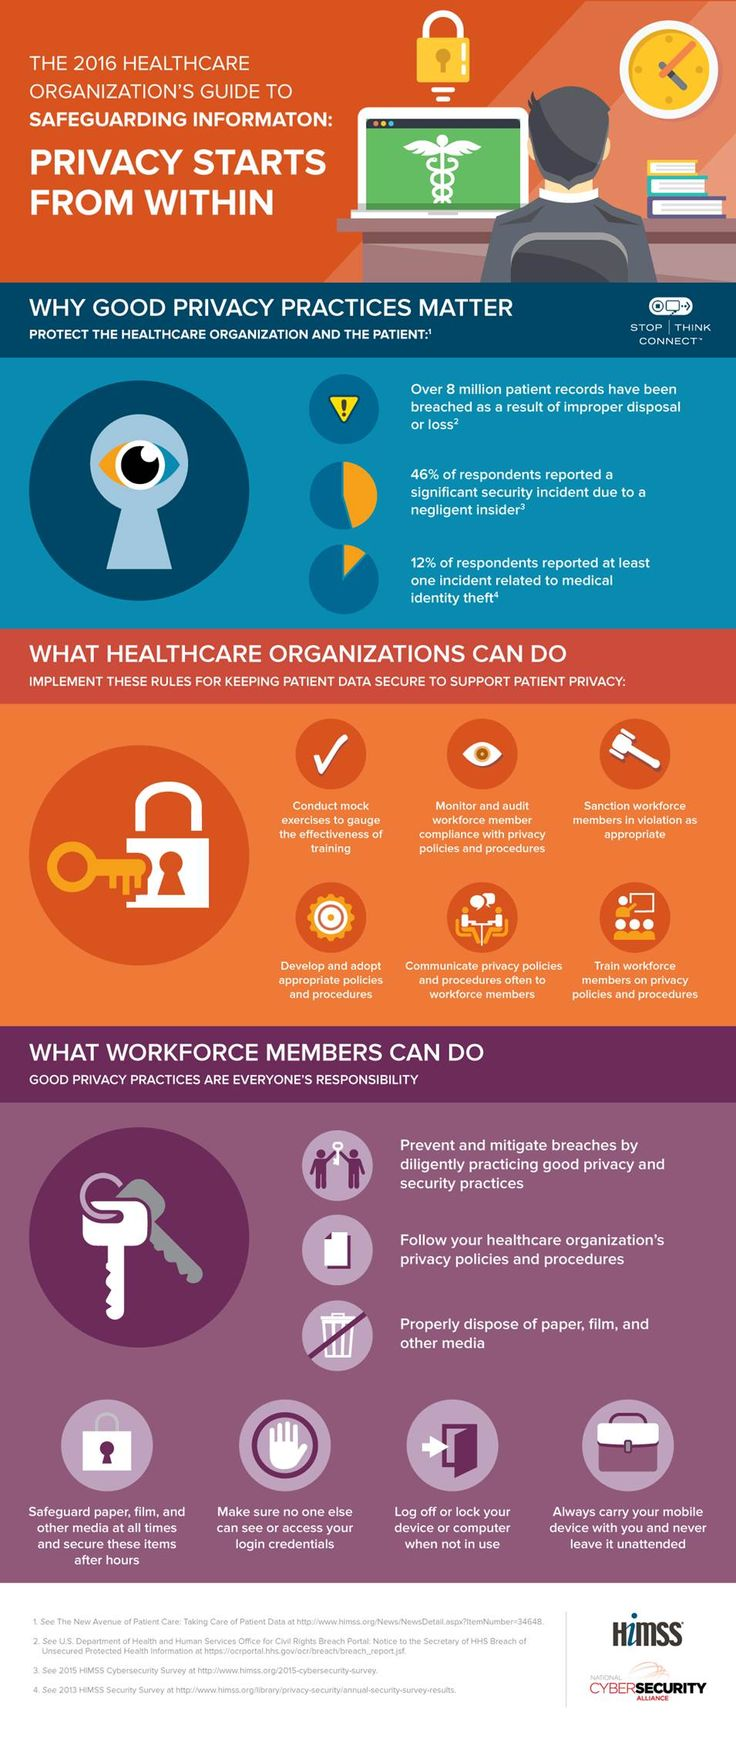 The 2016 Healthcare Organization's Guide to Safeguarding Information: Privacy Starts from Within